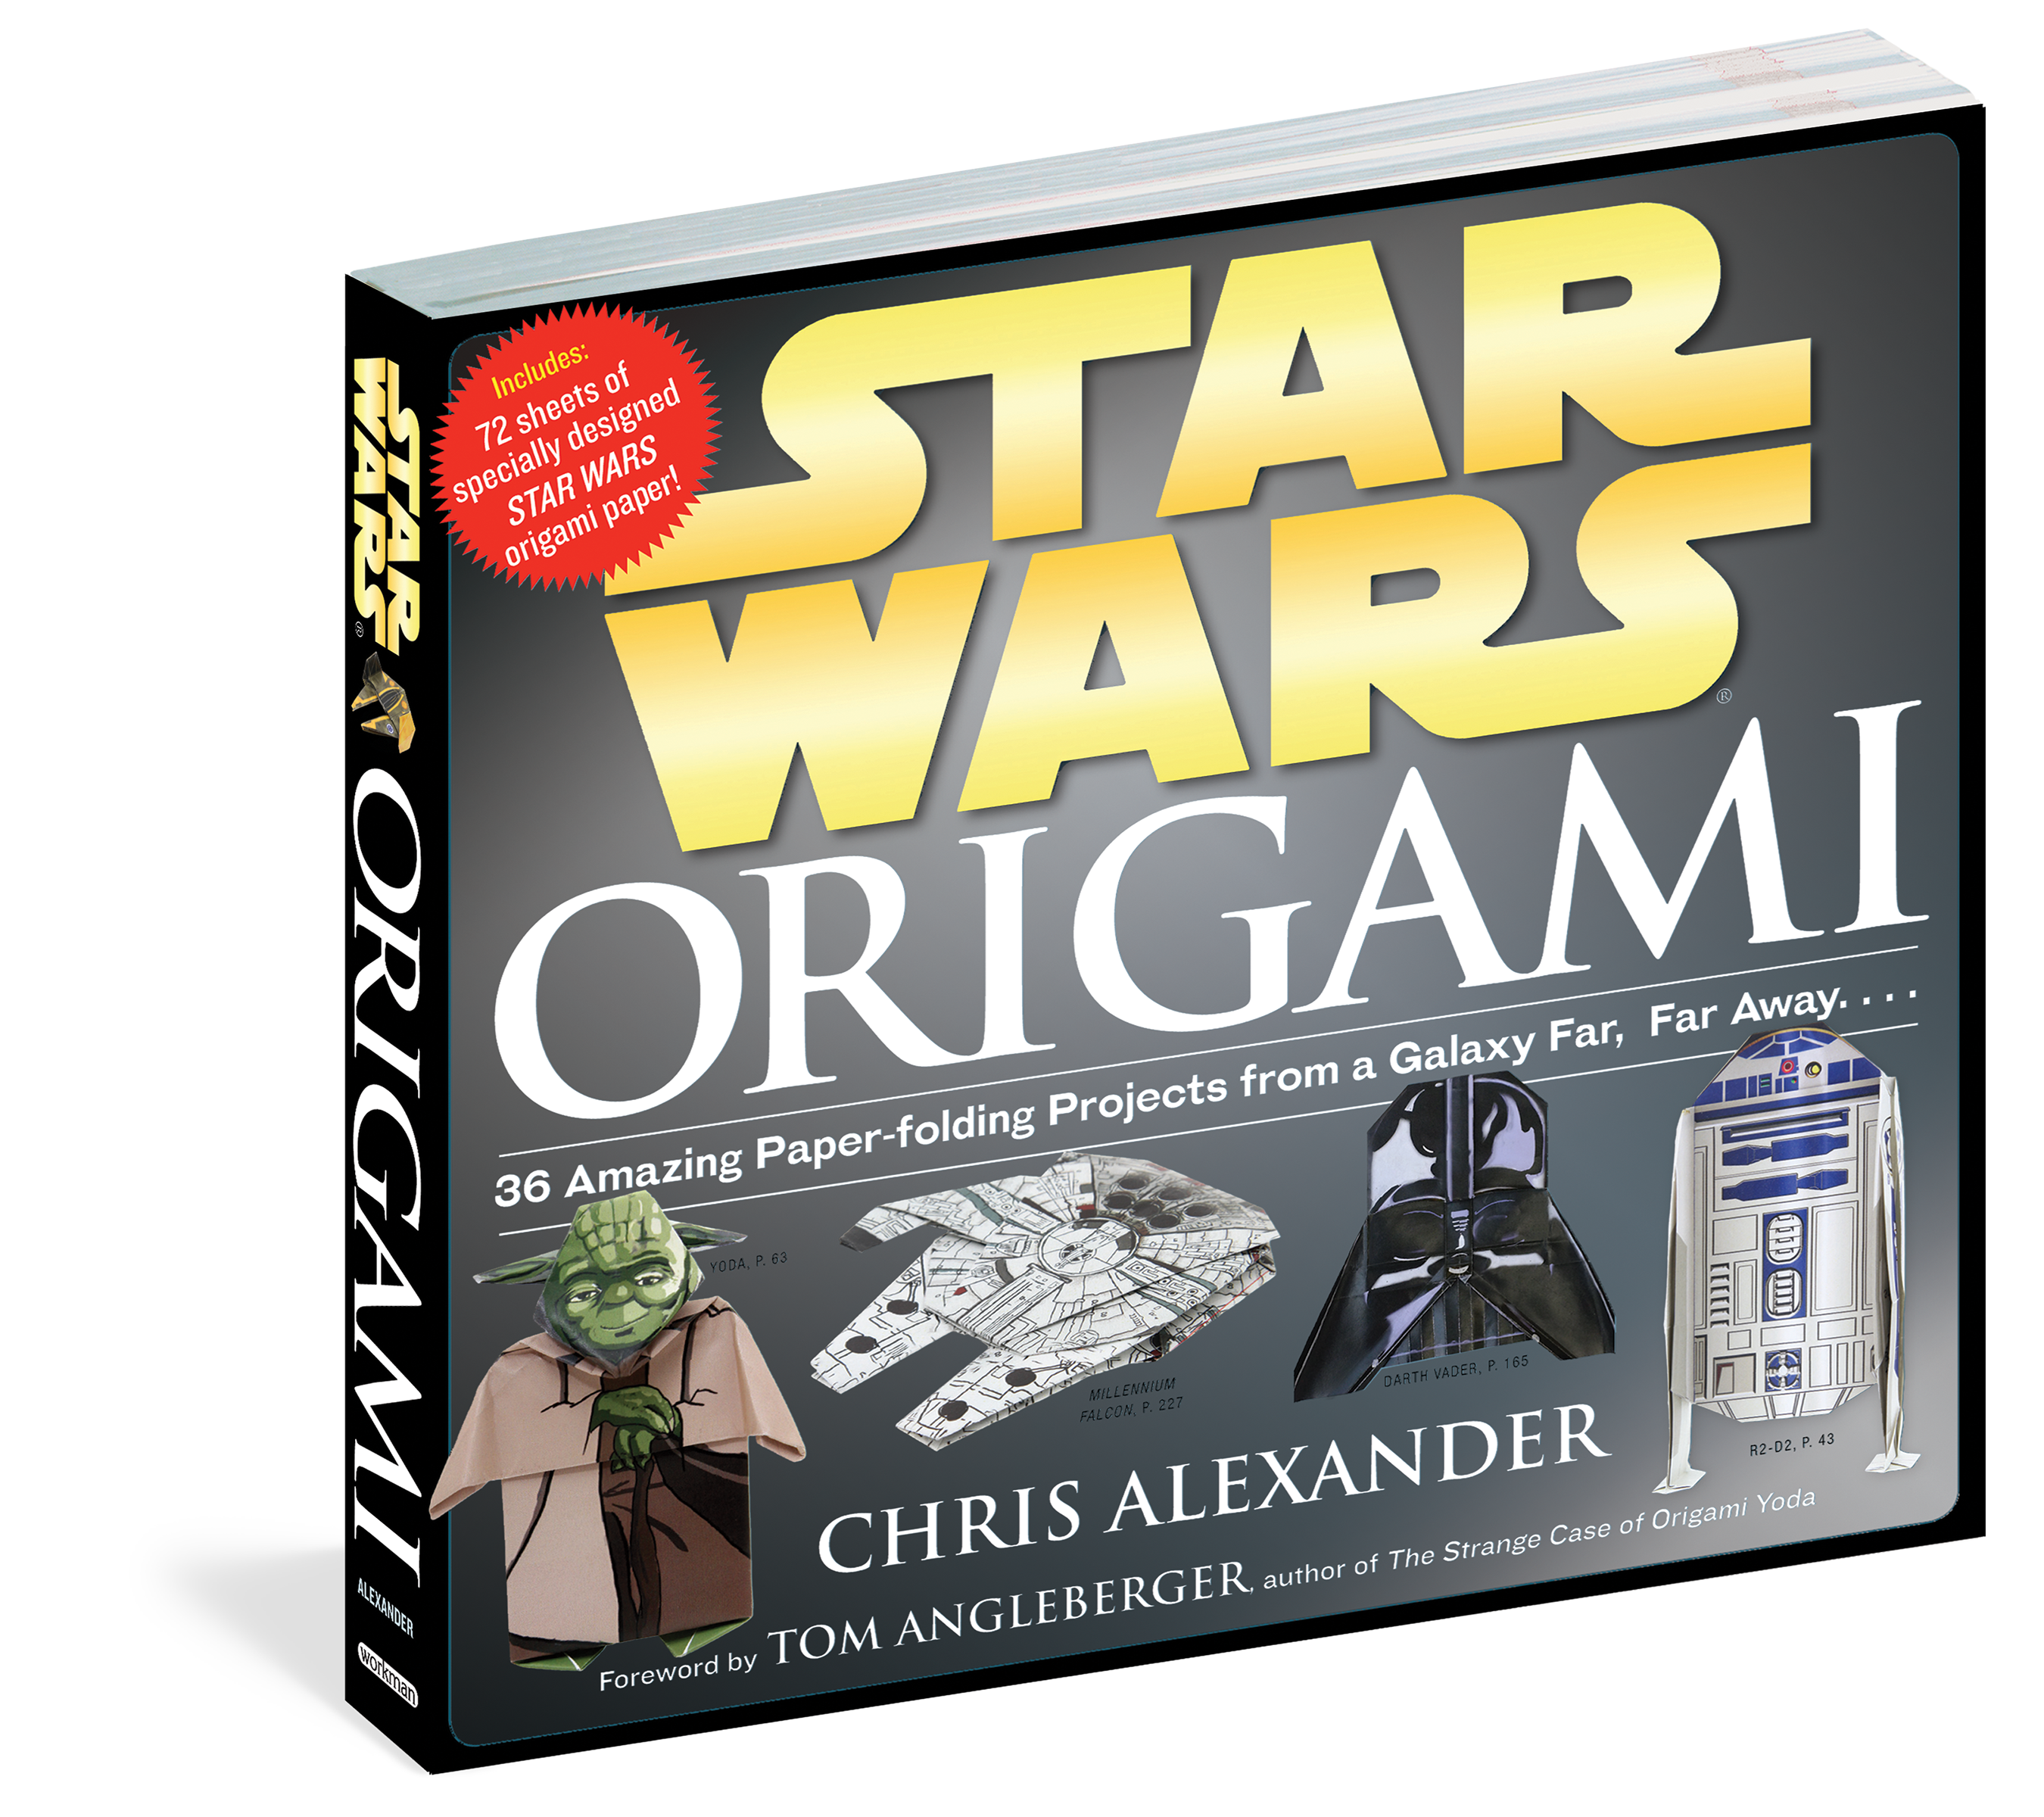 Star Wars Origami - Workman Publishing - photo#35